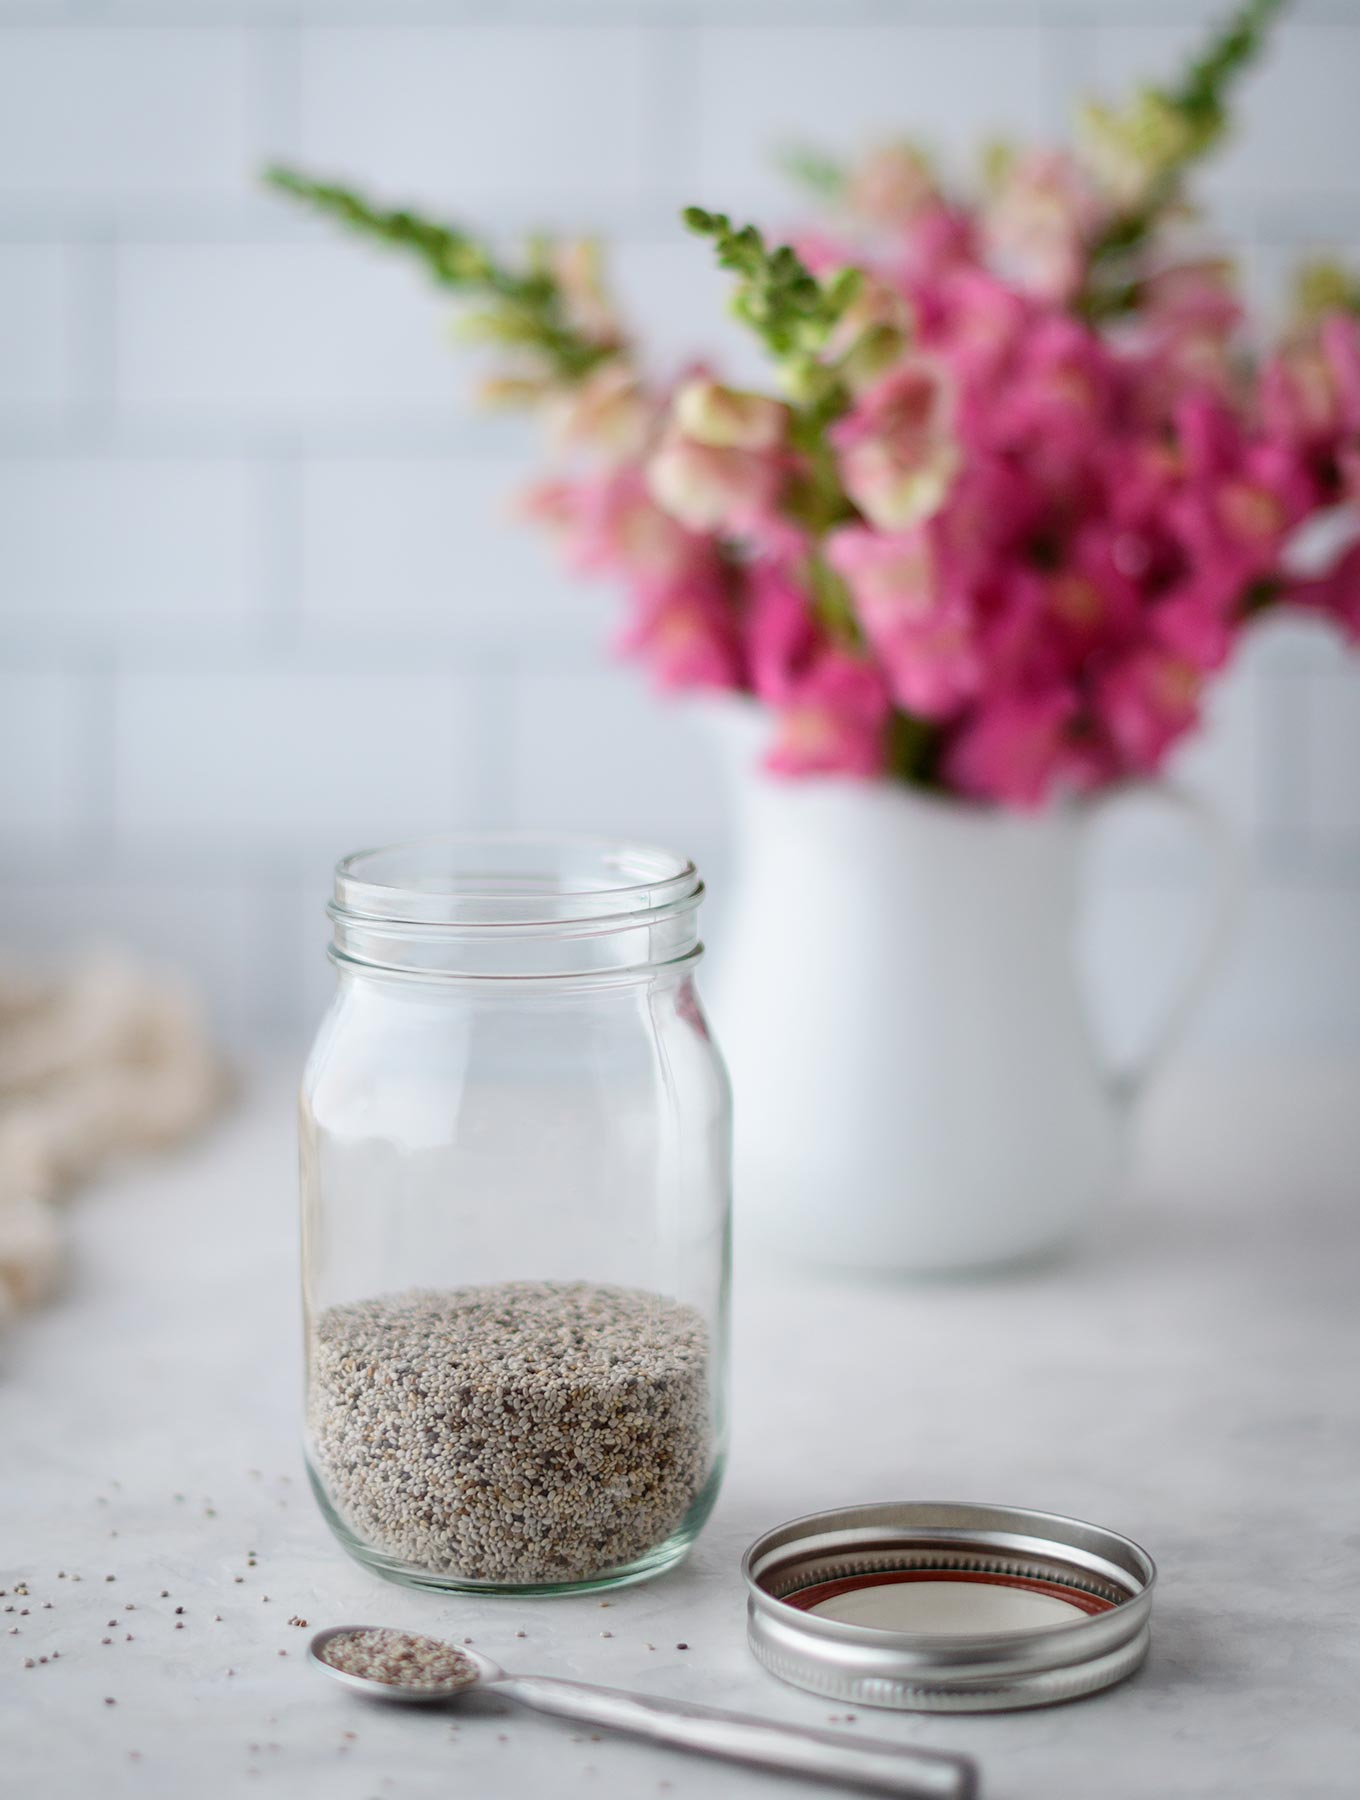 Jar of chia seeds